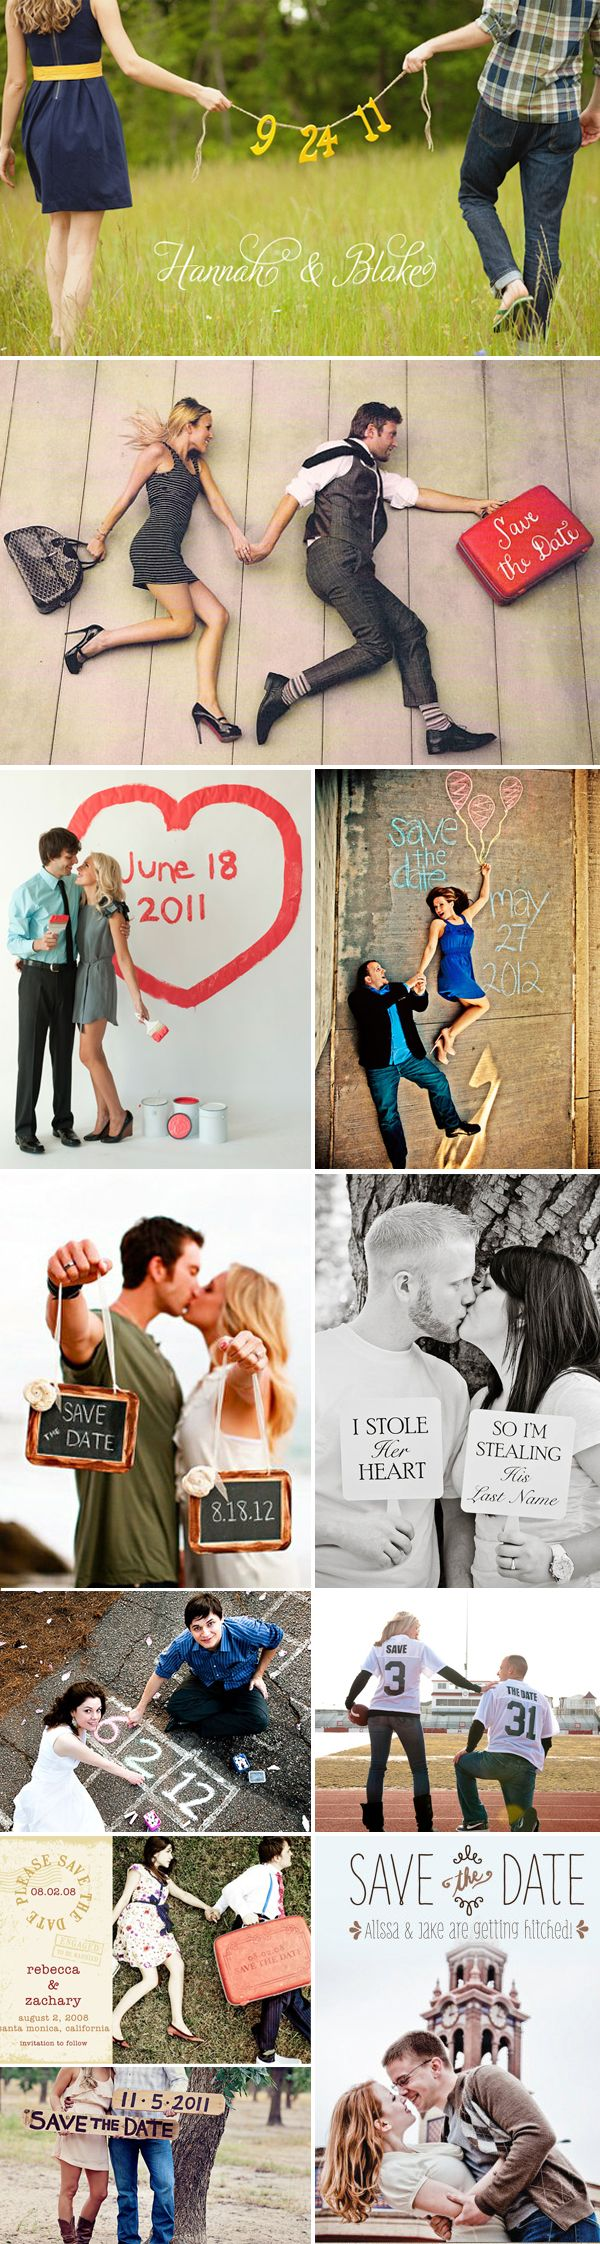 58 save the date ideas!... or just cute picture ideas